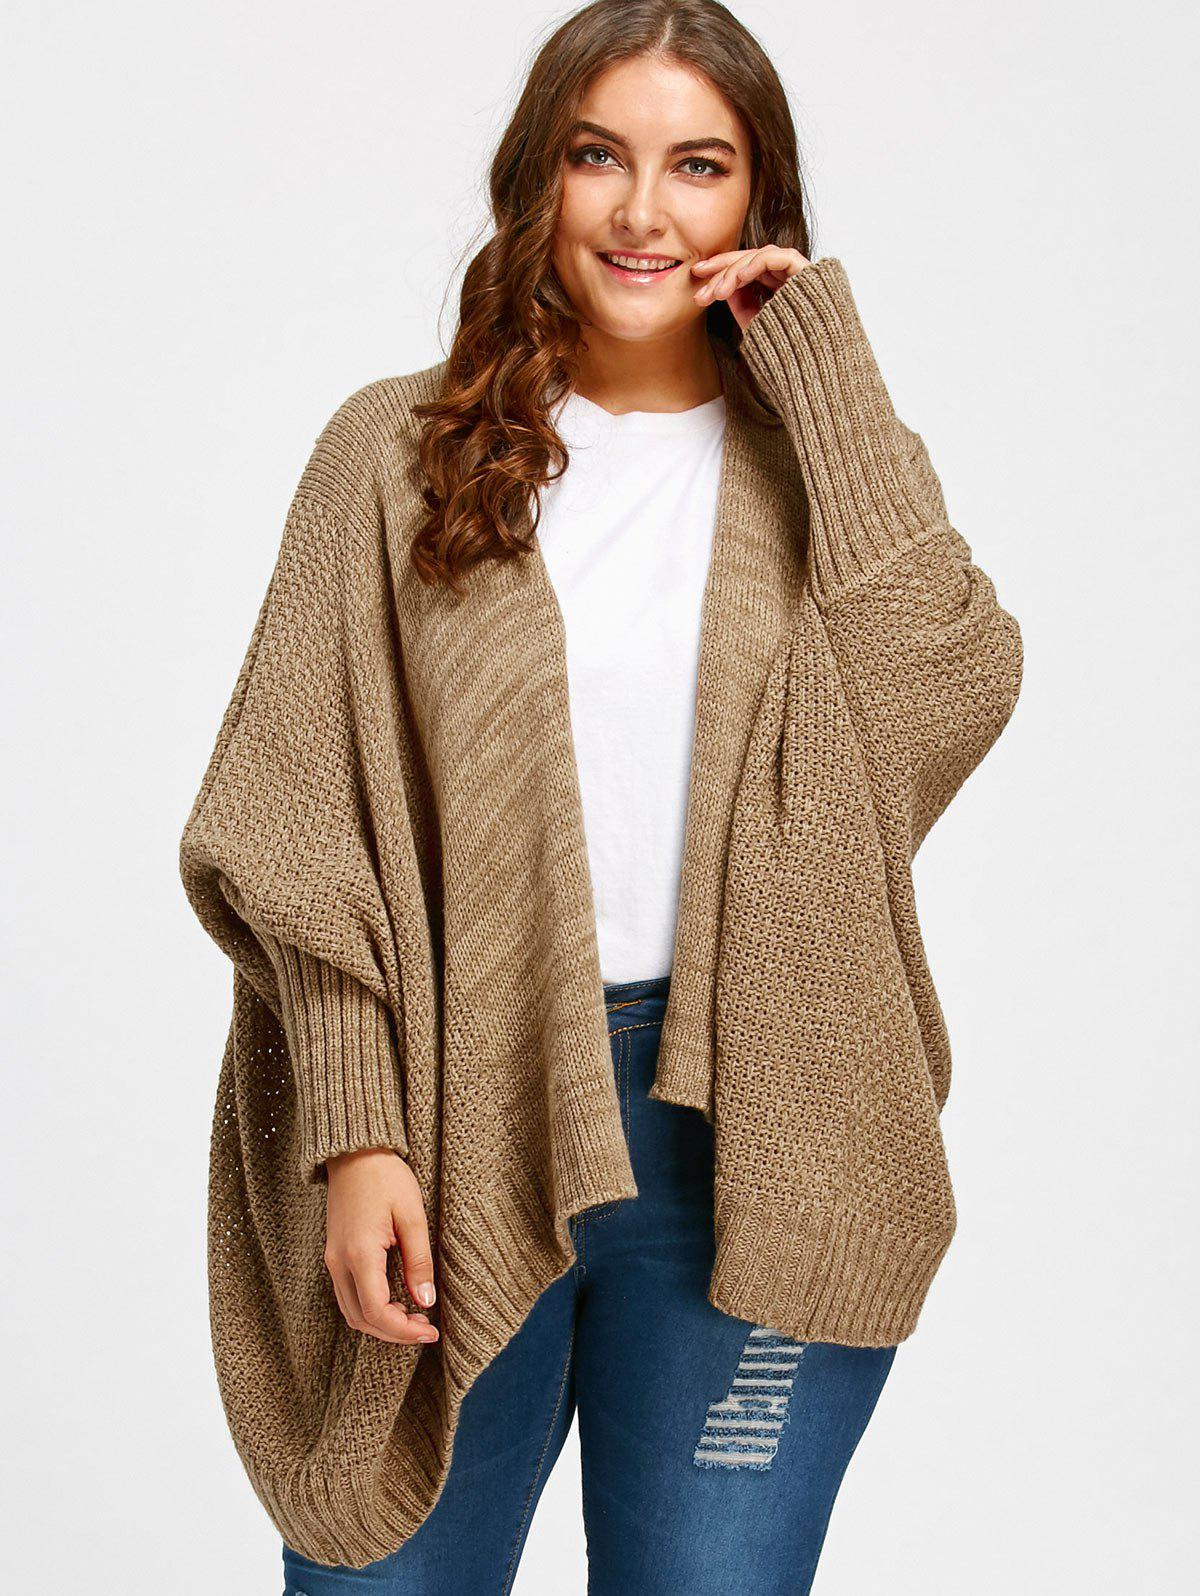 569c1f276c 2019 Batwing Sleeve Plus Size Knit Cardigan